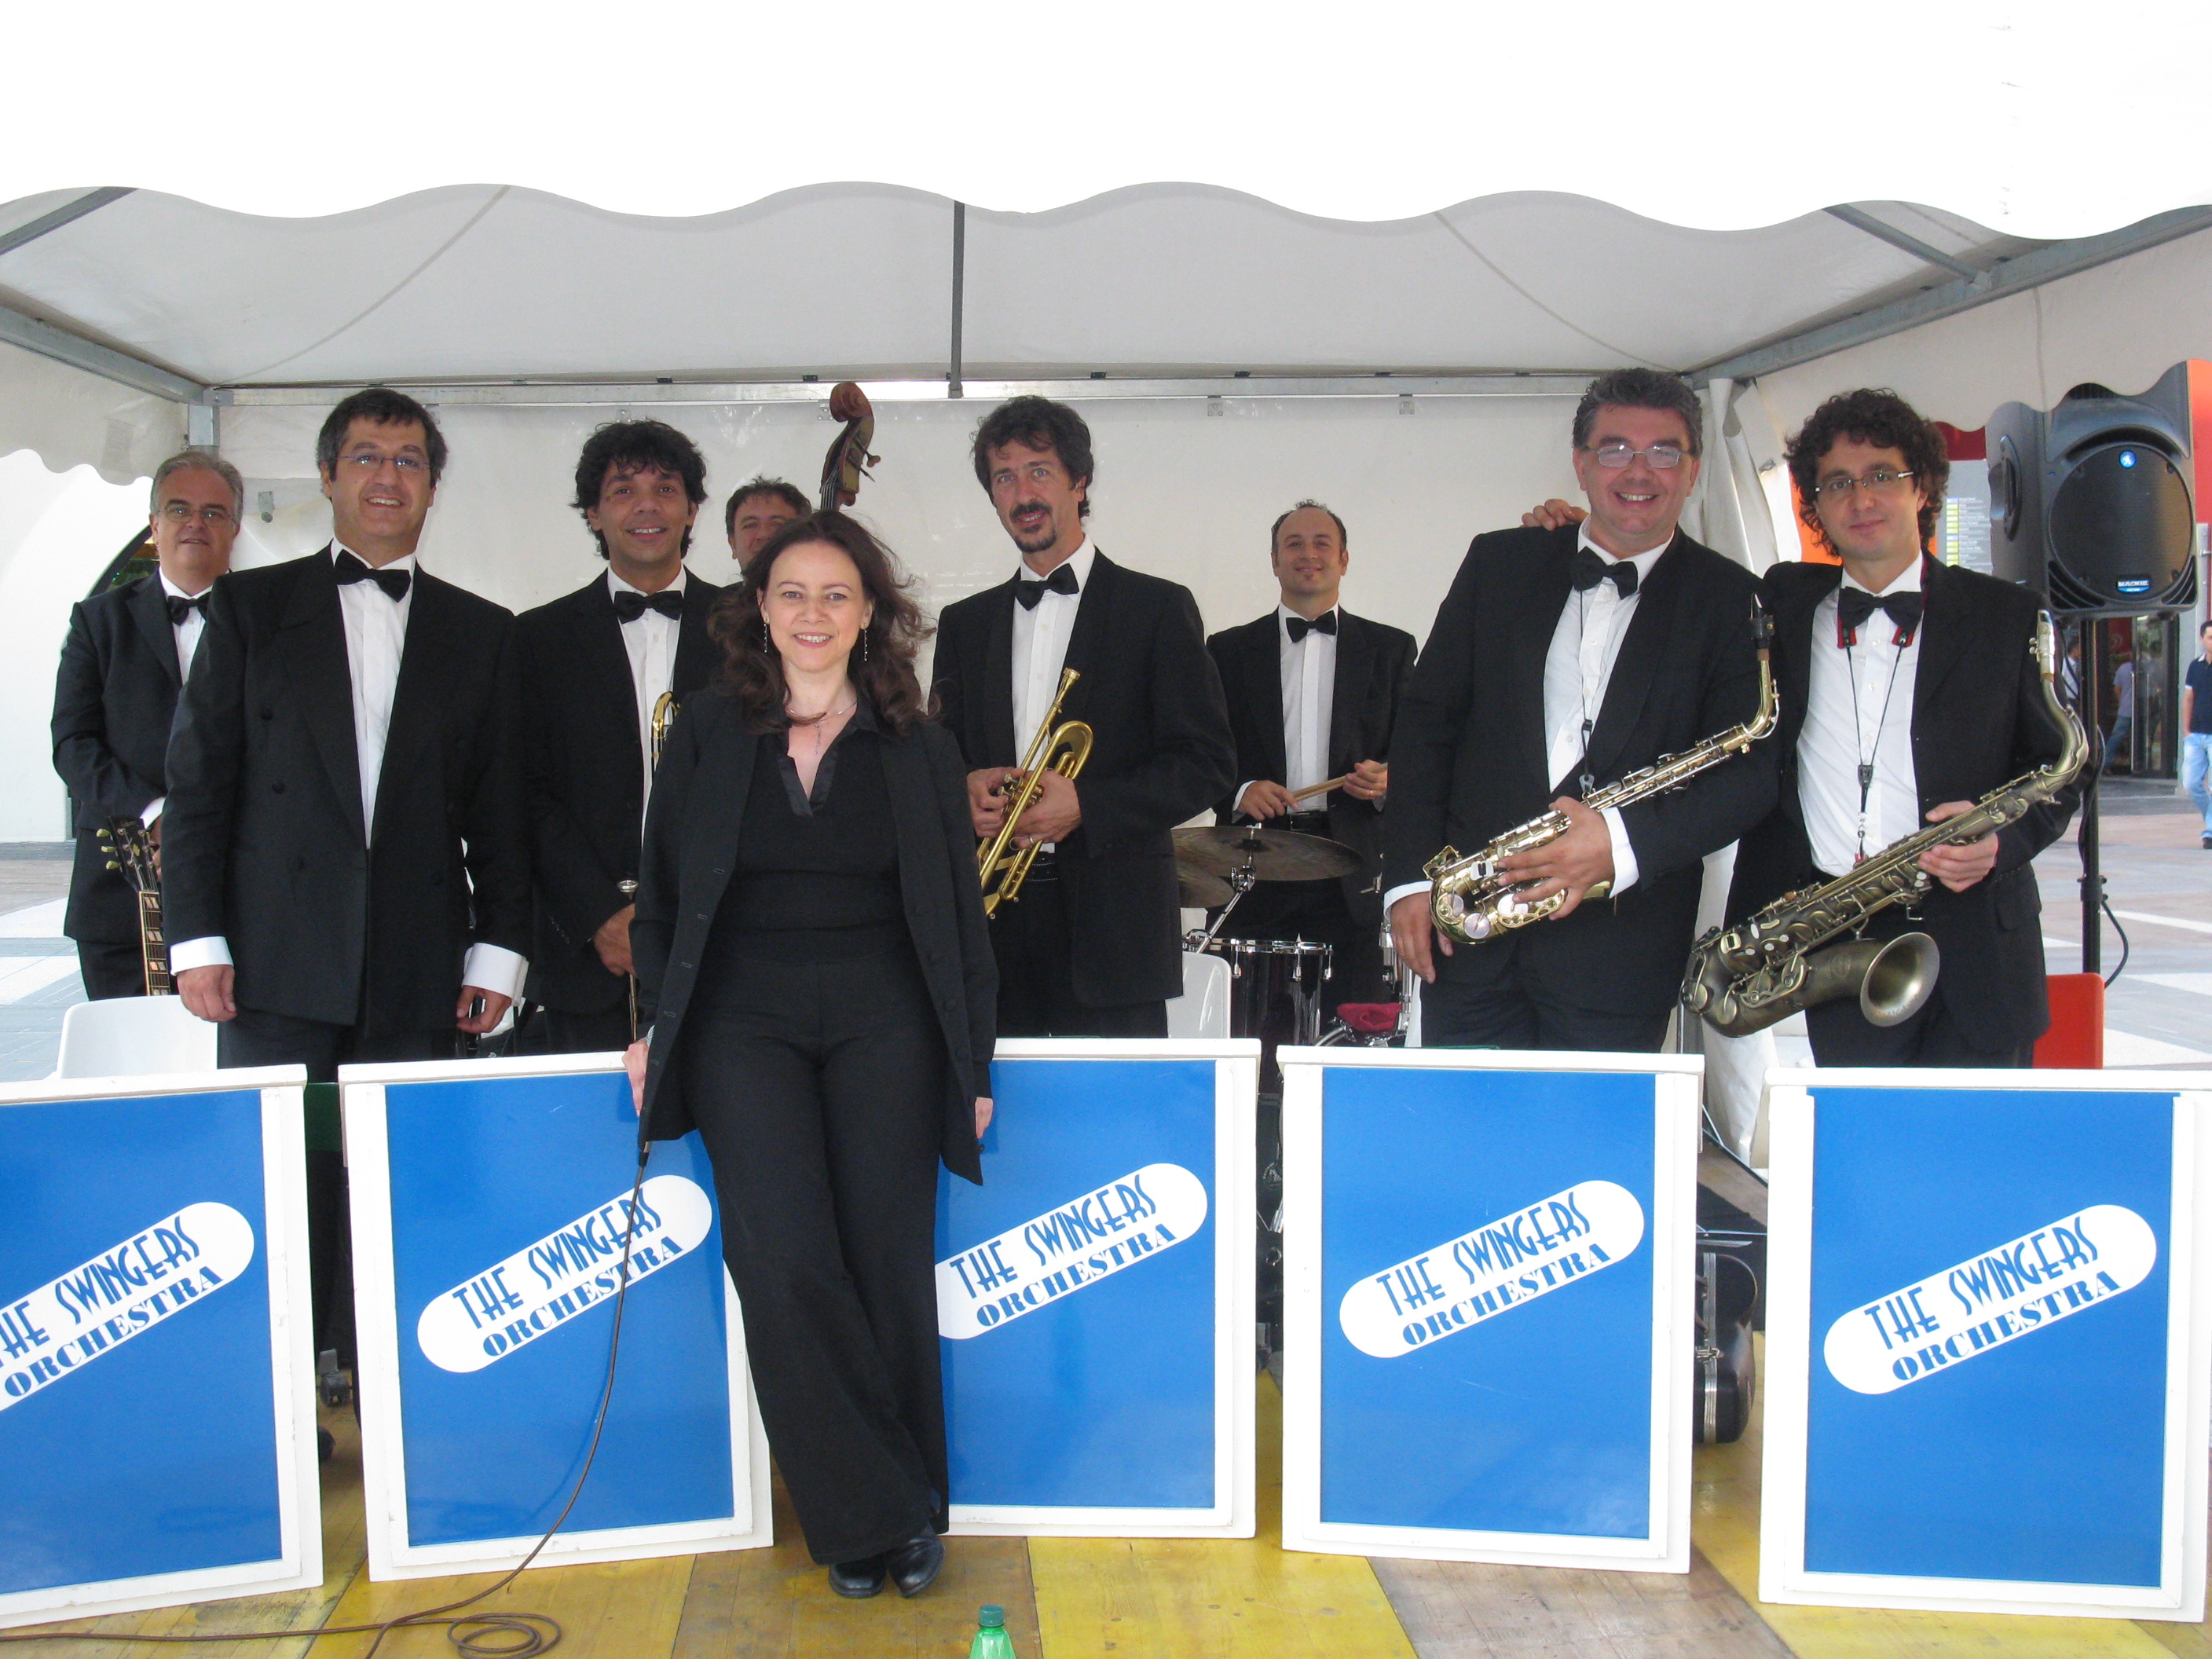 The-Swingers-Orchestra-al-Soratte-Outlet